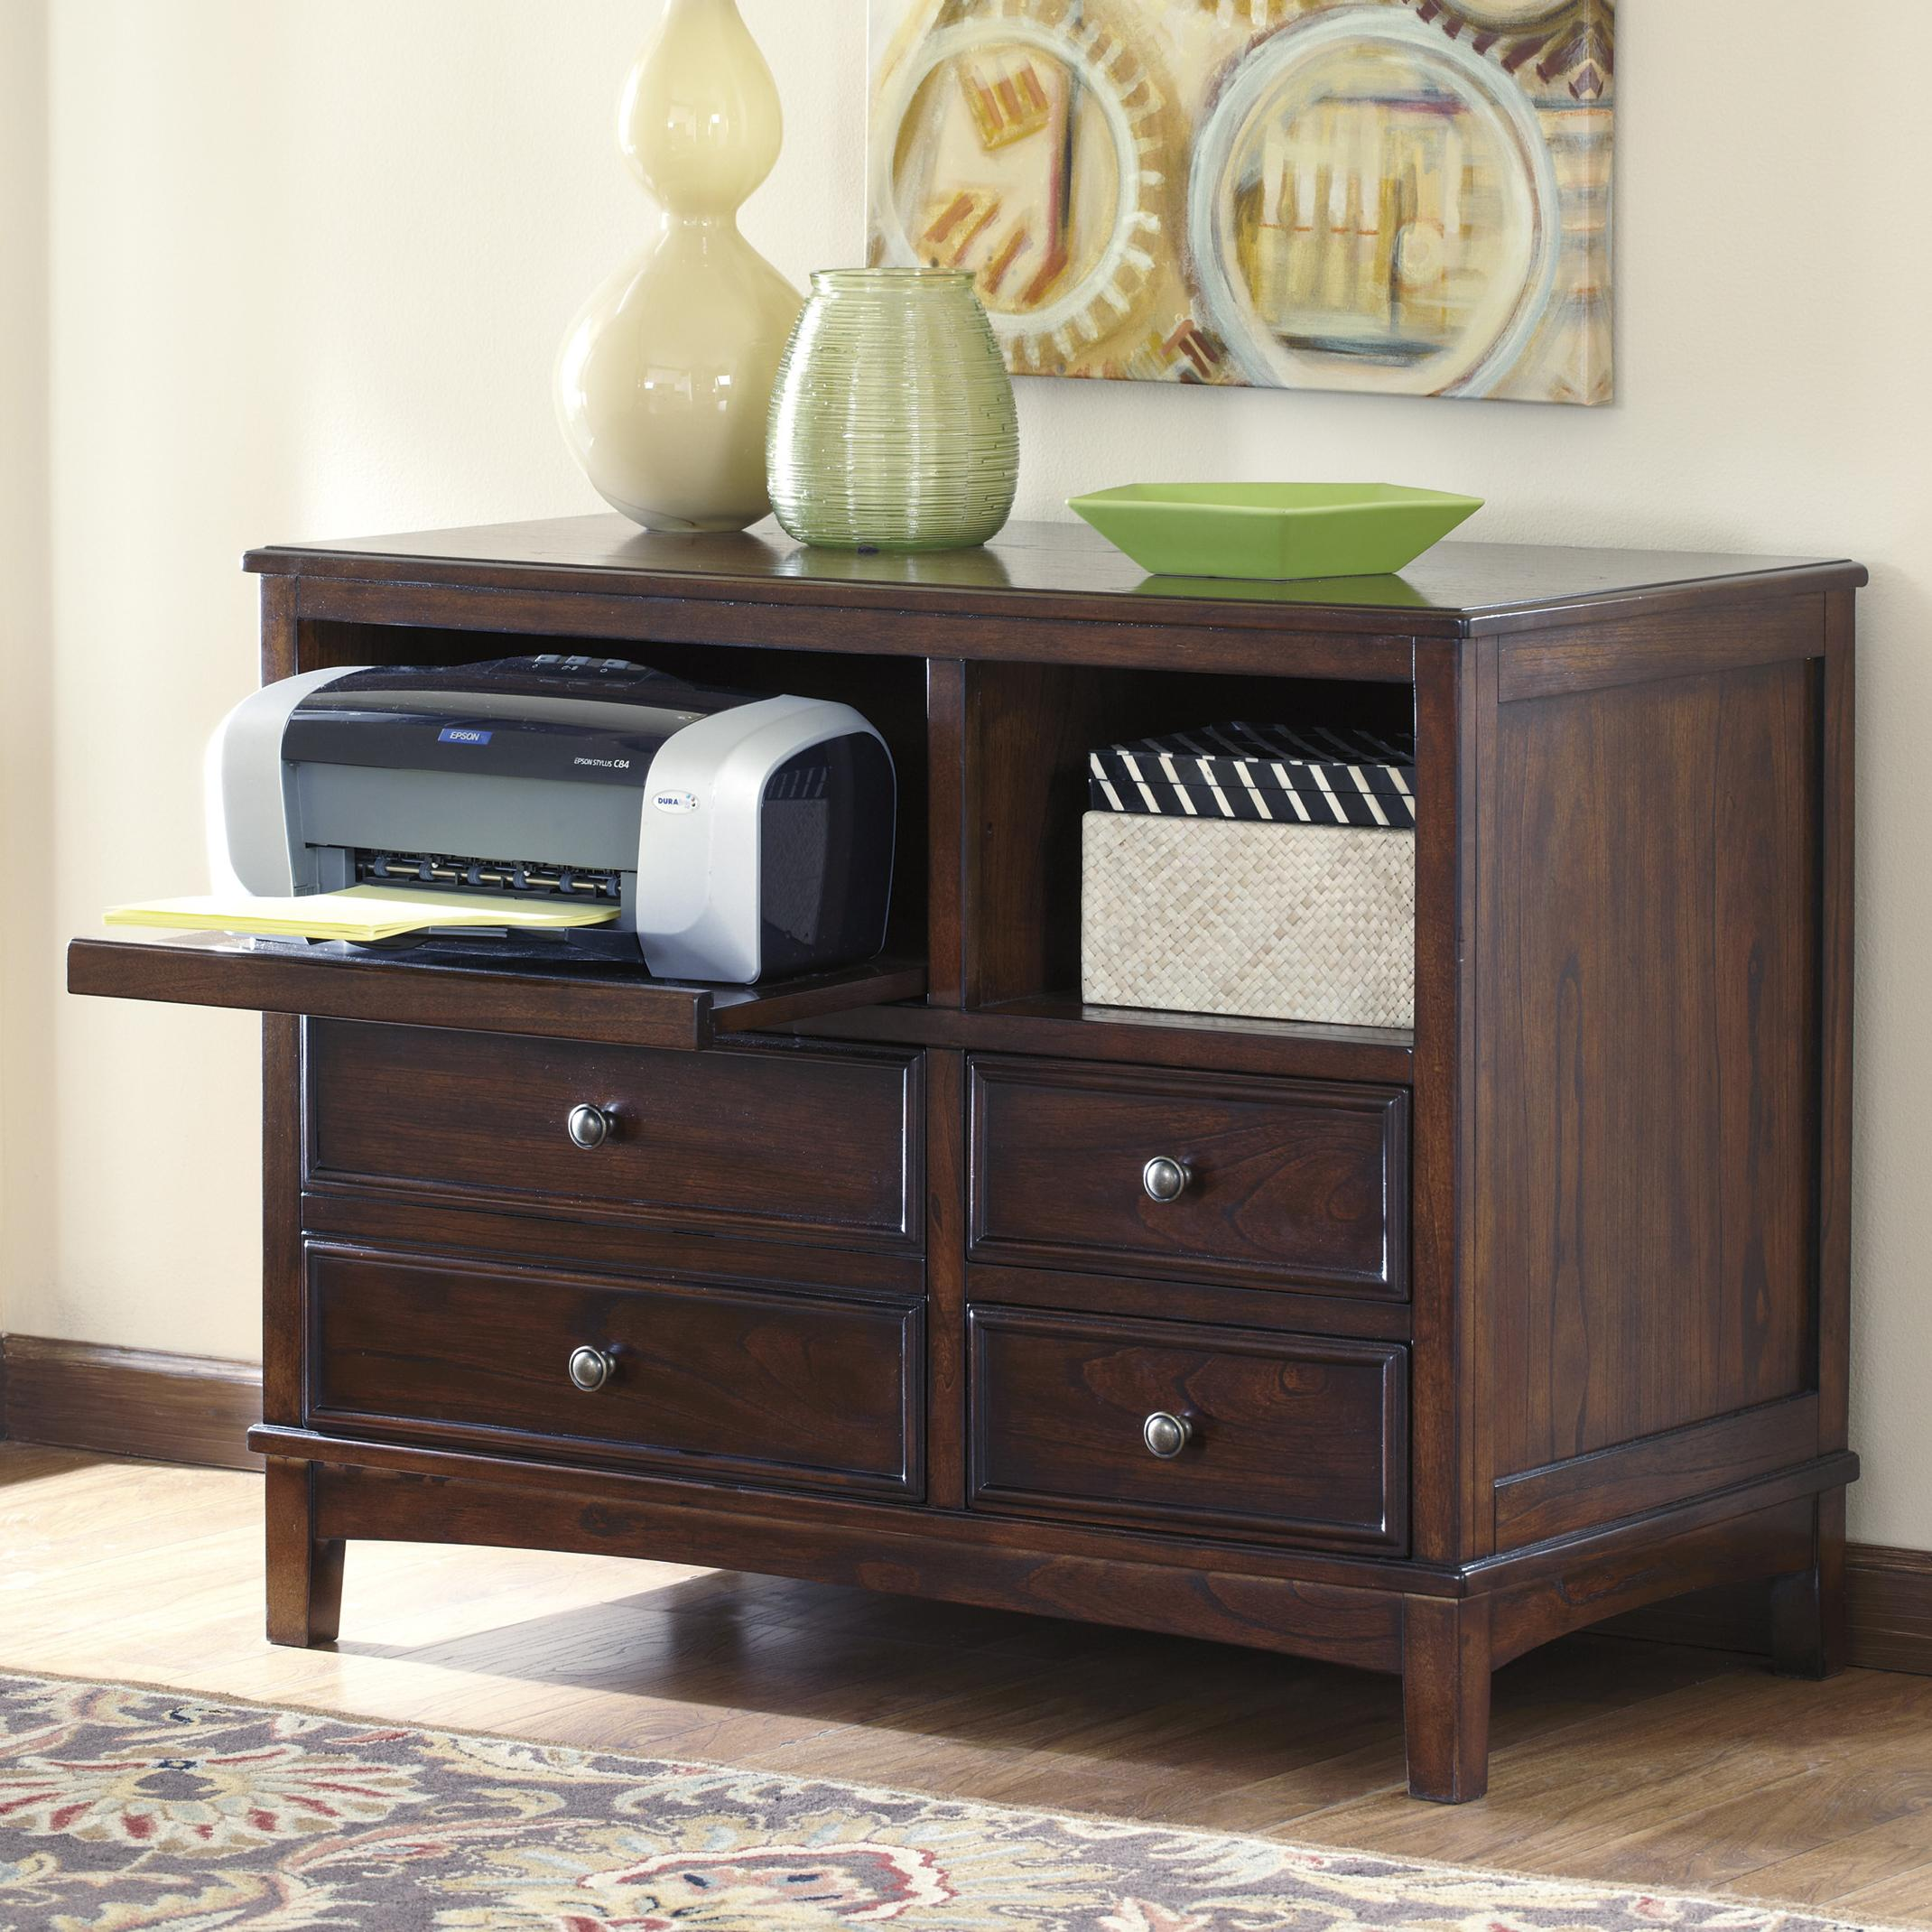 Signature Design by Ashley Devrik Storage Cabinet - Item Number: H619-40